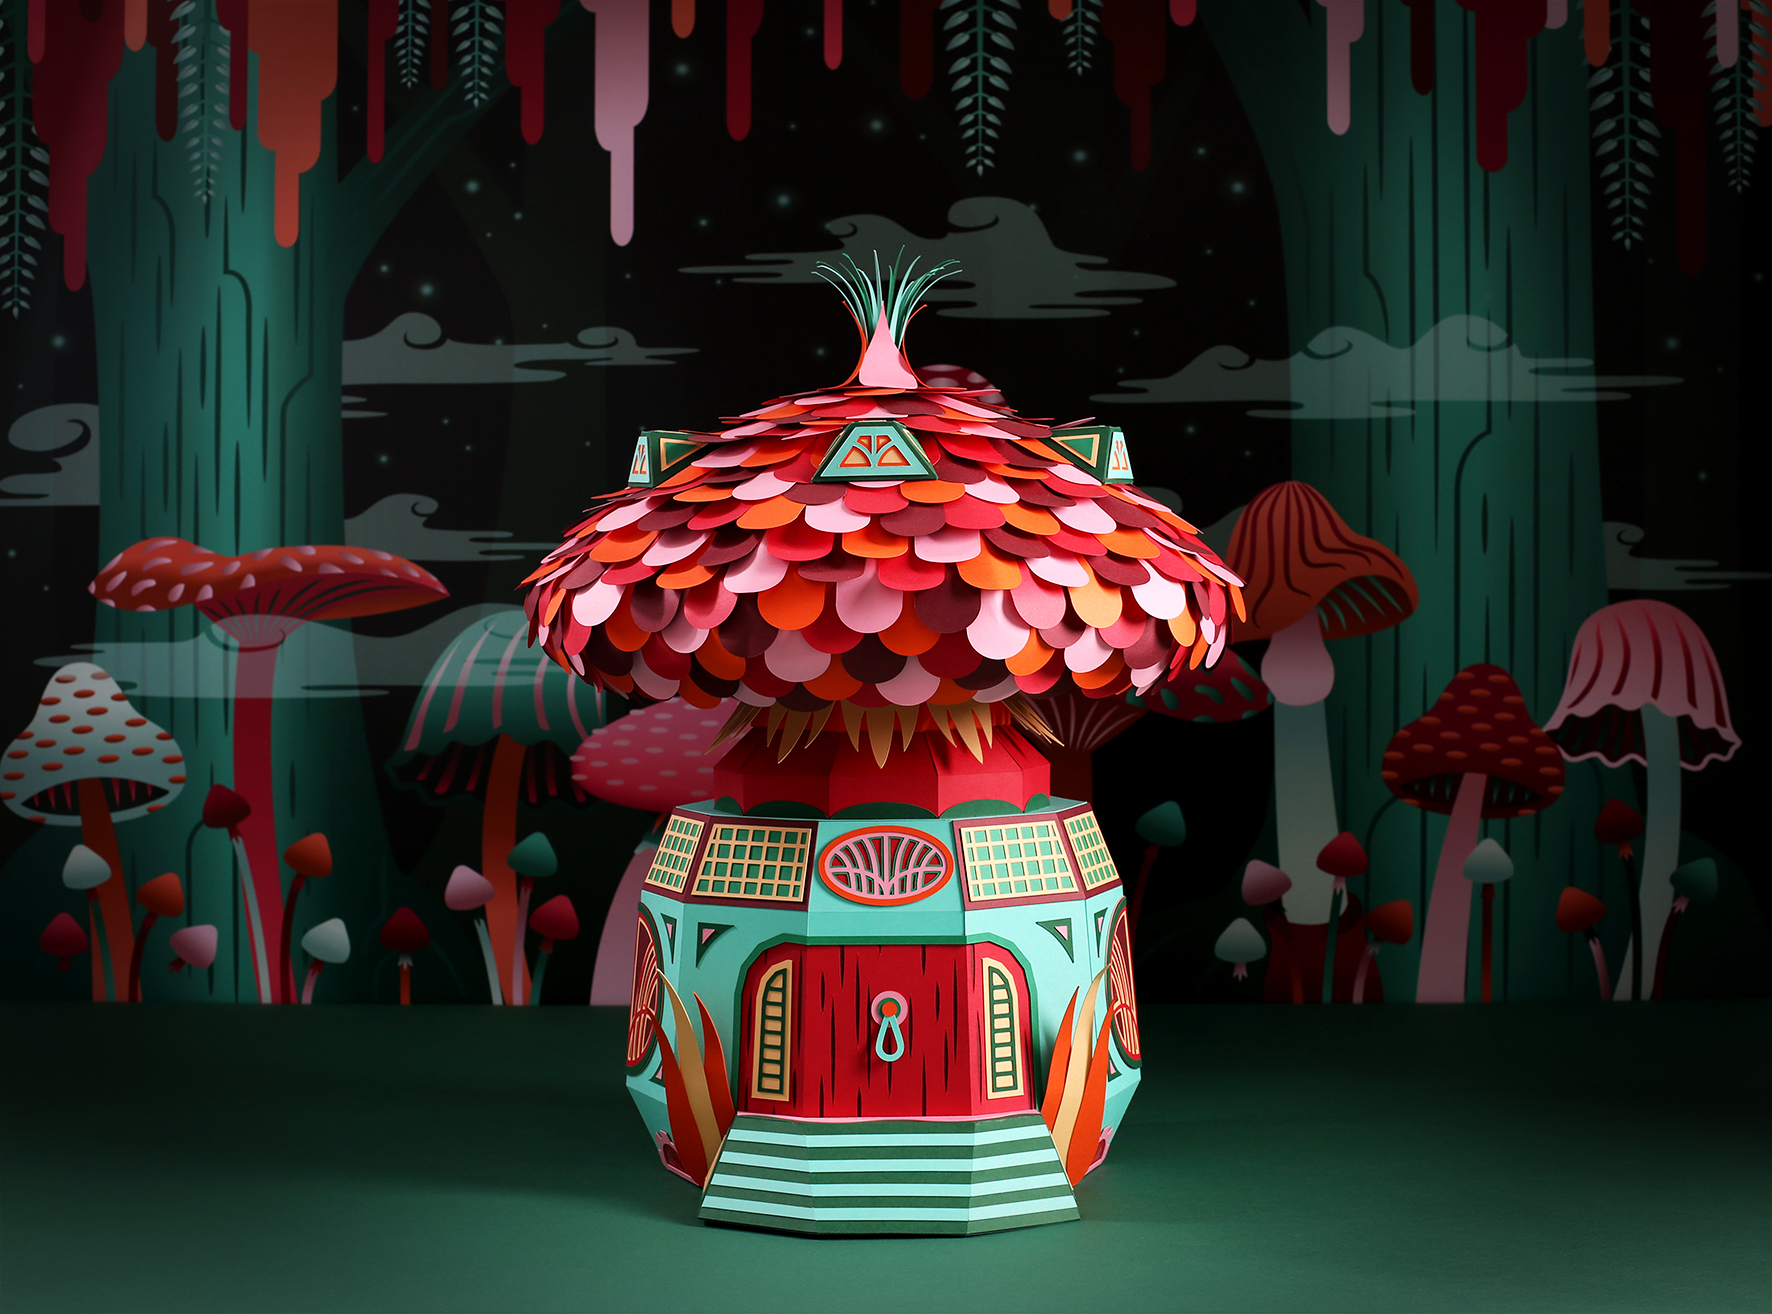 Fantastic Miniature Worlds of Nature Bursting with Color for Hermès Window Display in Dubai - Mushroom